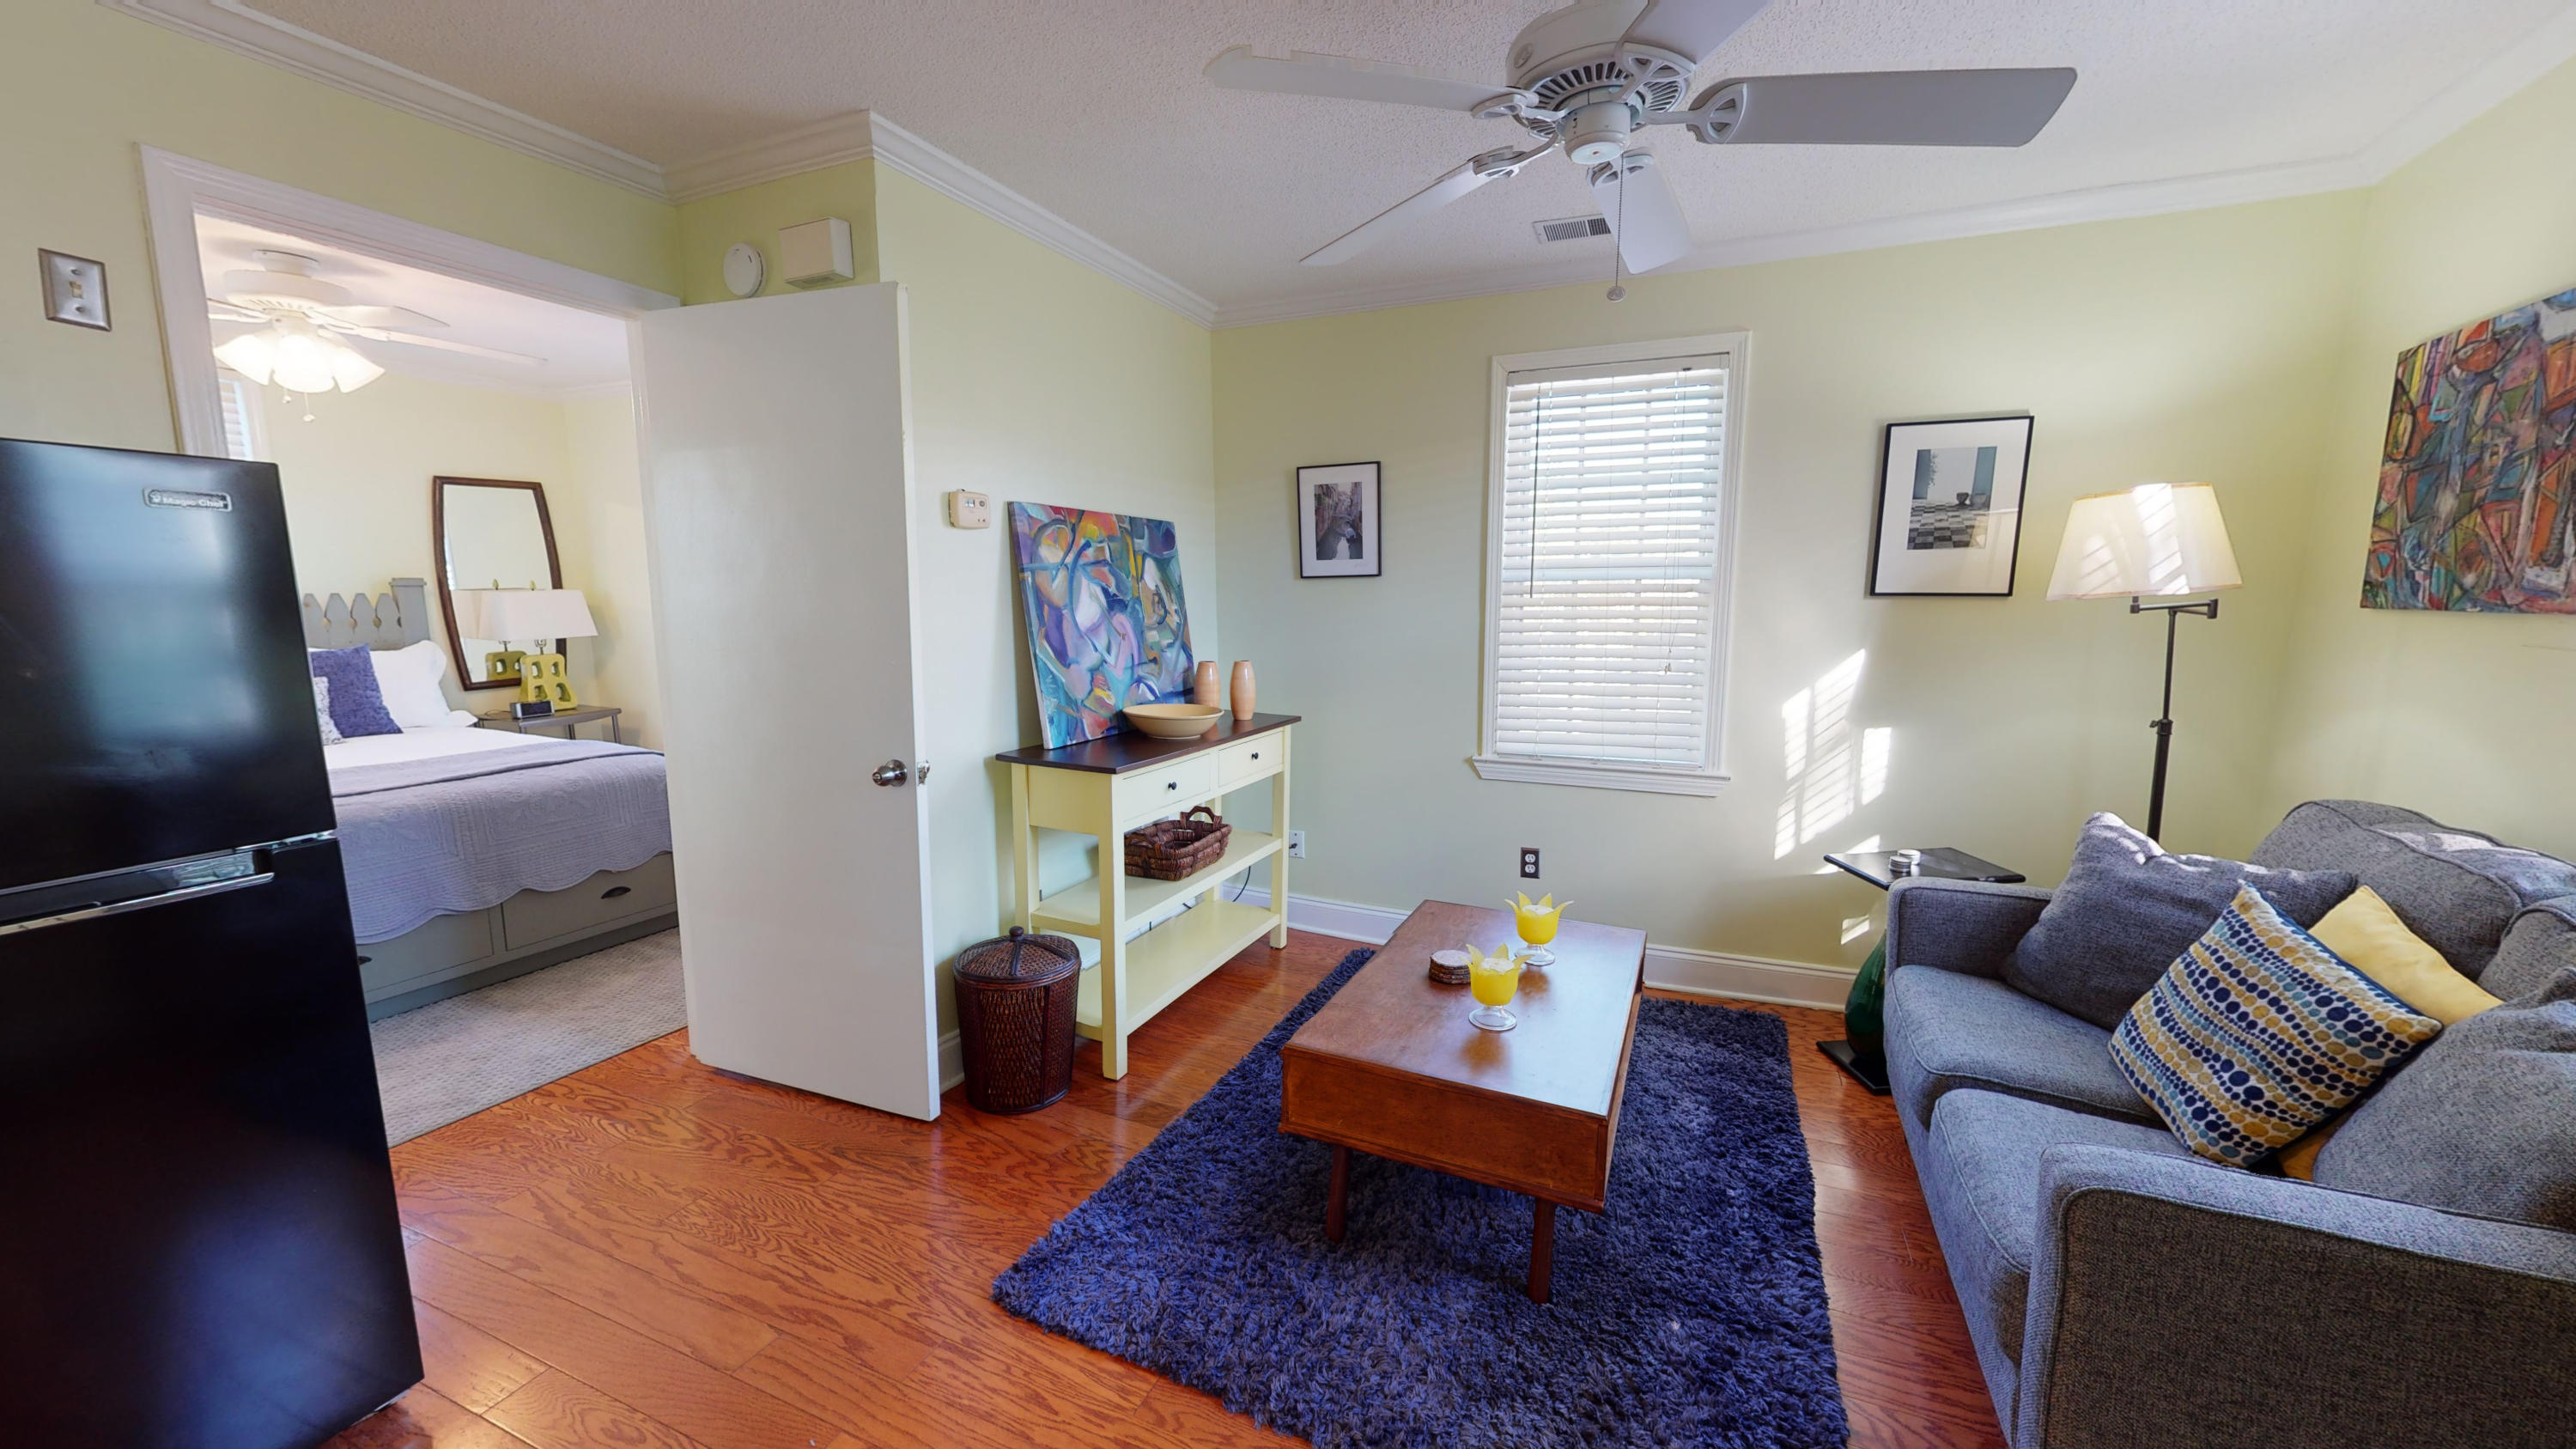 7 Kracke Street UNIT 7 1/2 B Charleston, SC 29403